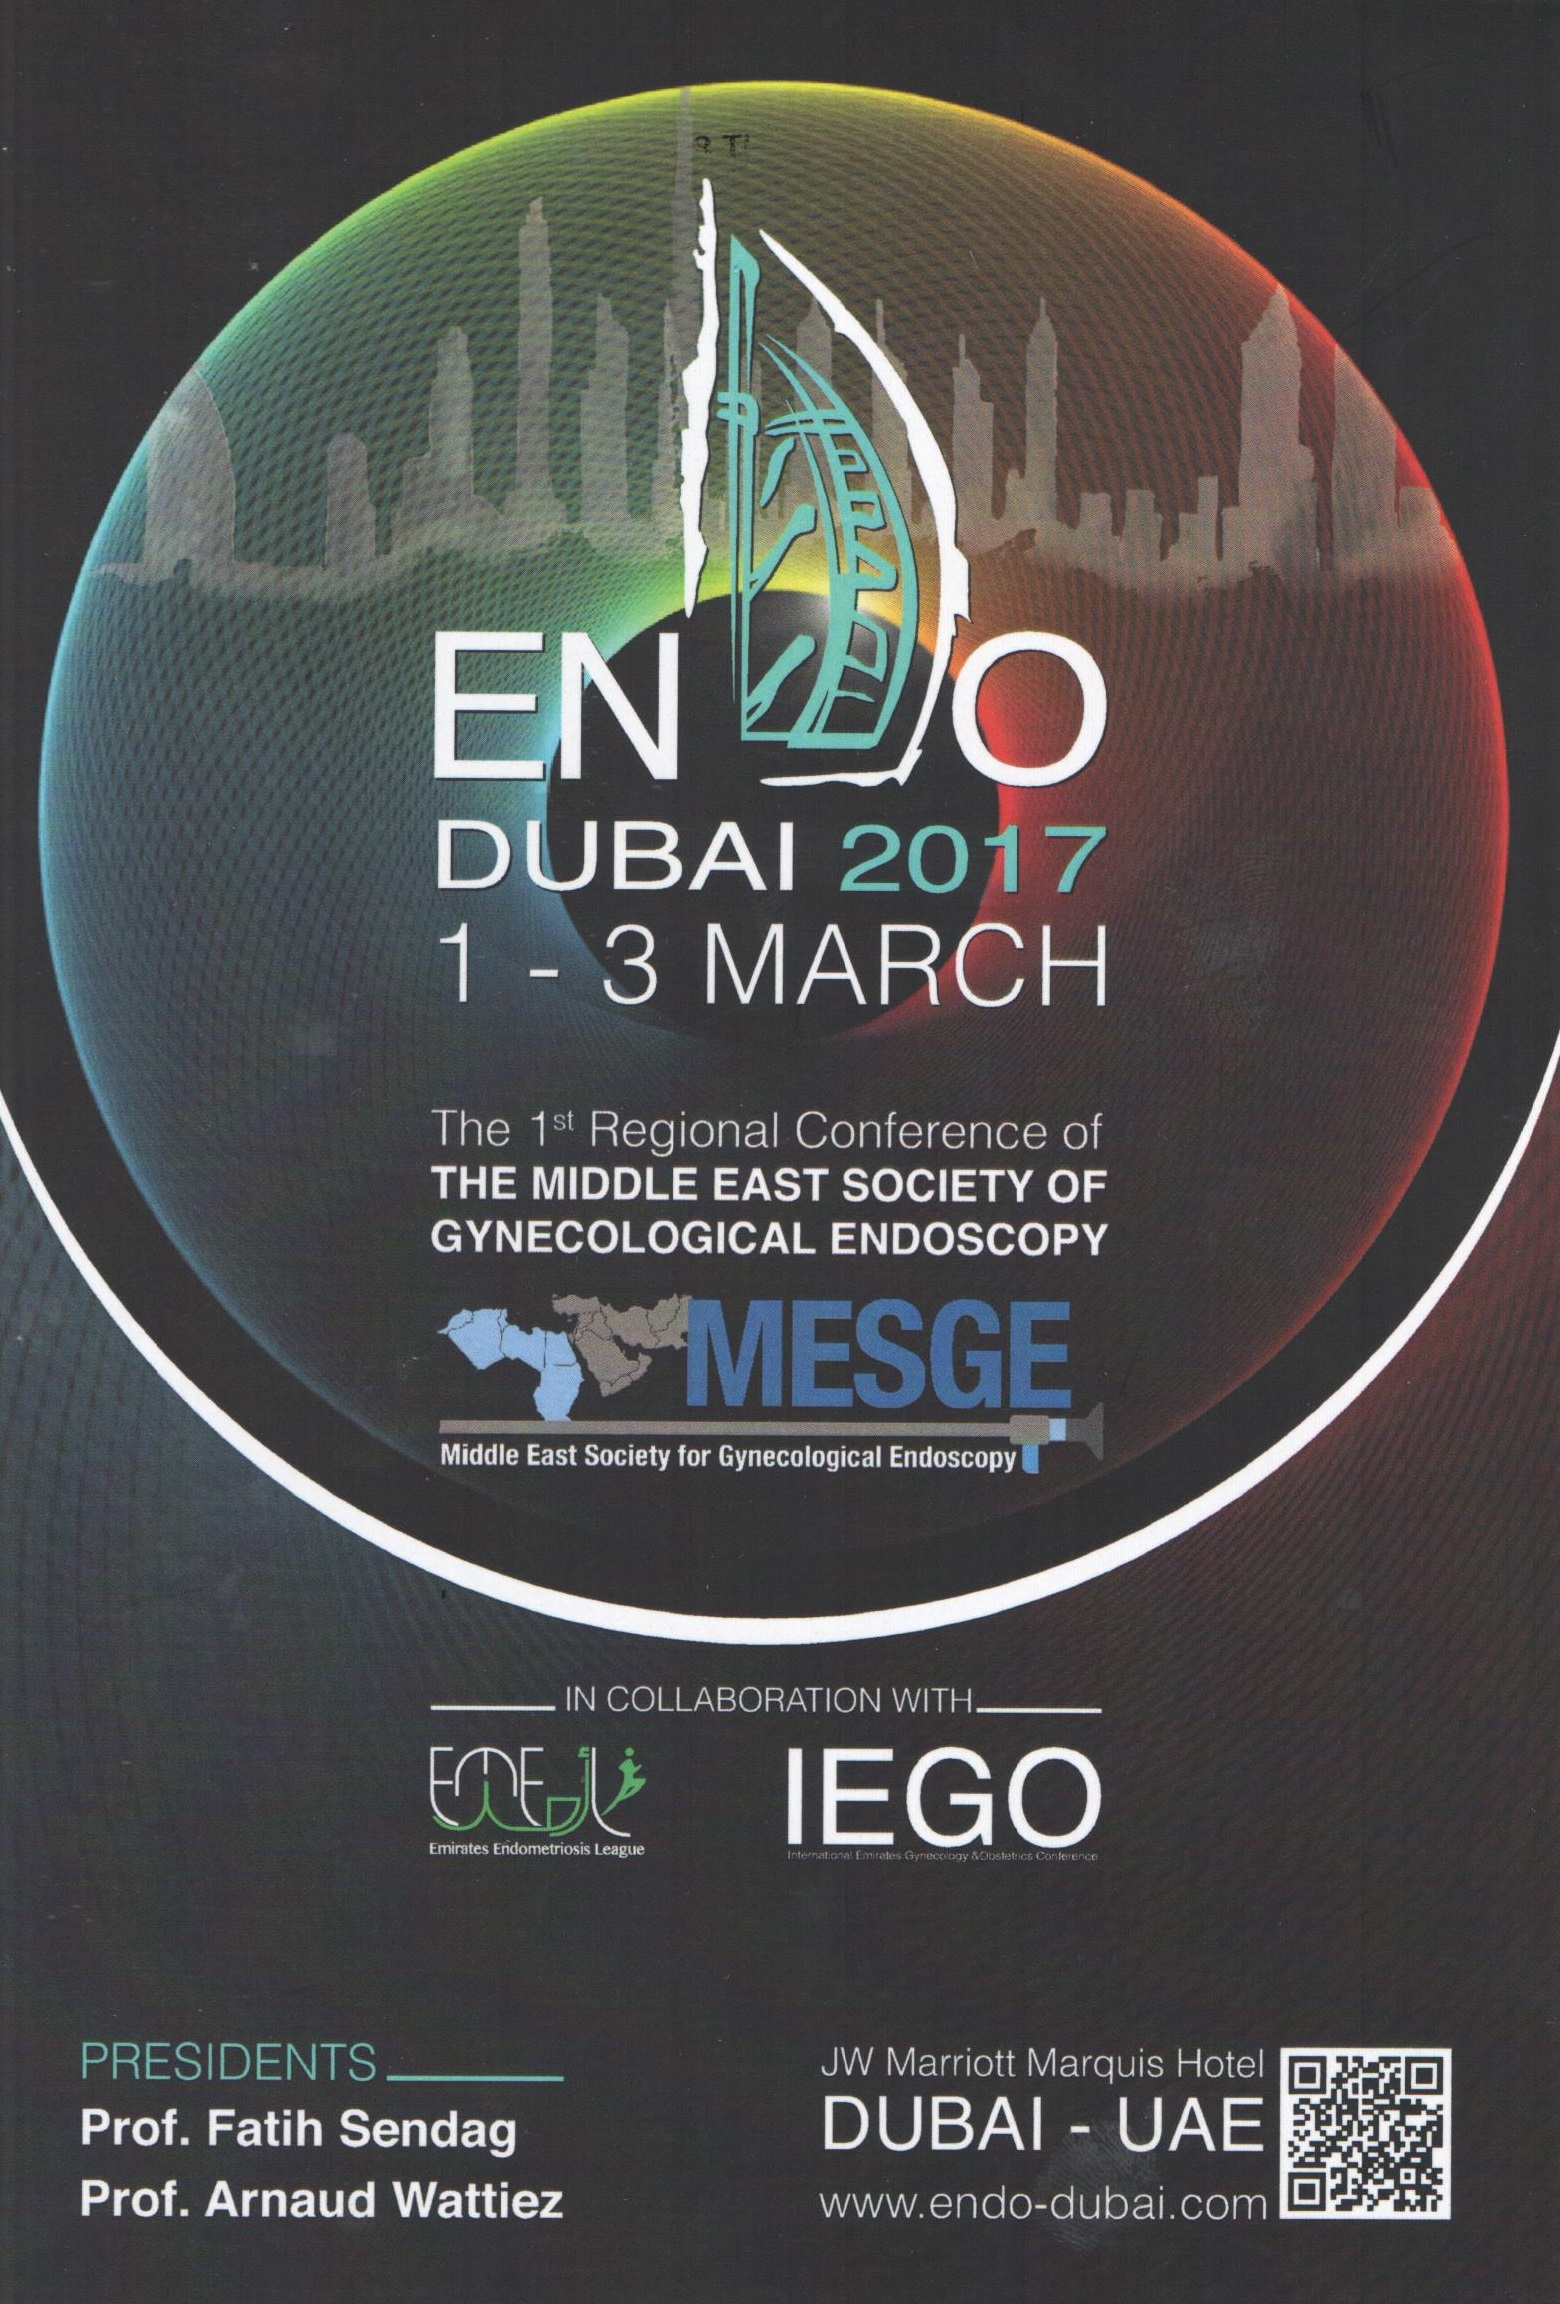 The 1st Regional Conference of The Middle East Society Of Gynecological Endoscopy